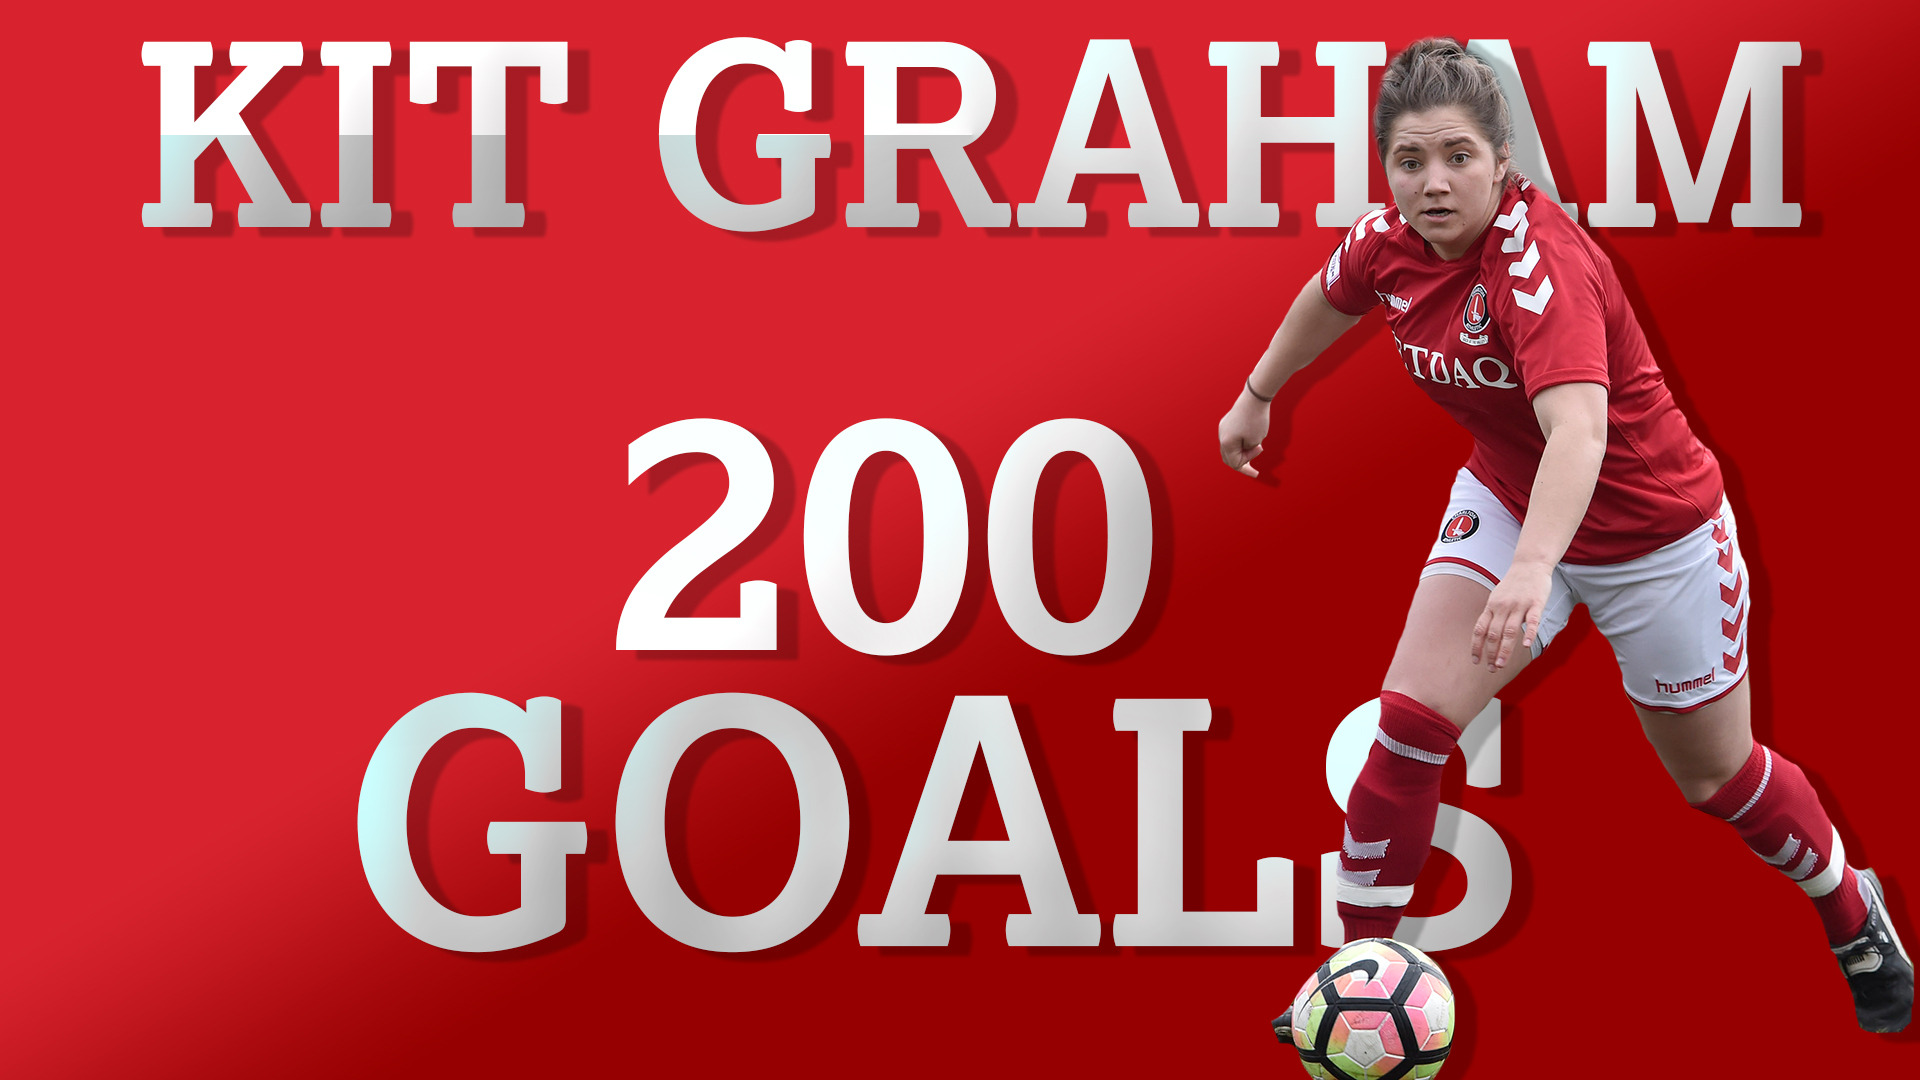 Kit Graham scored her 200th goal for the Charlton Women